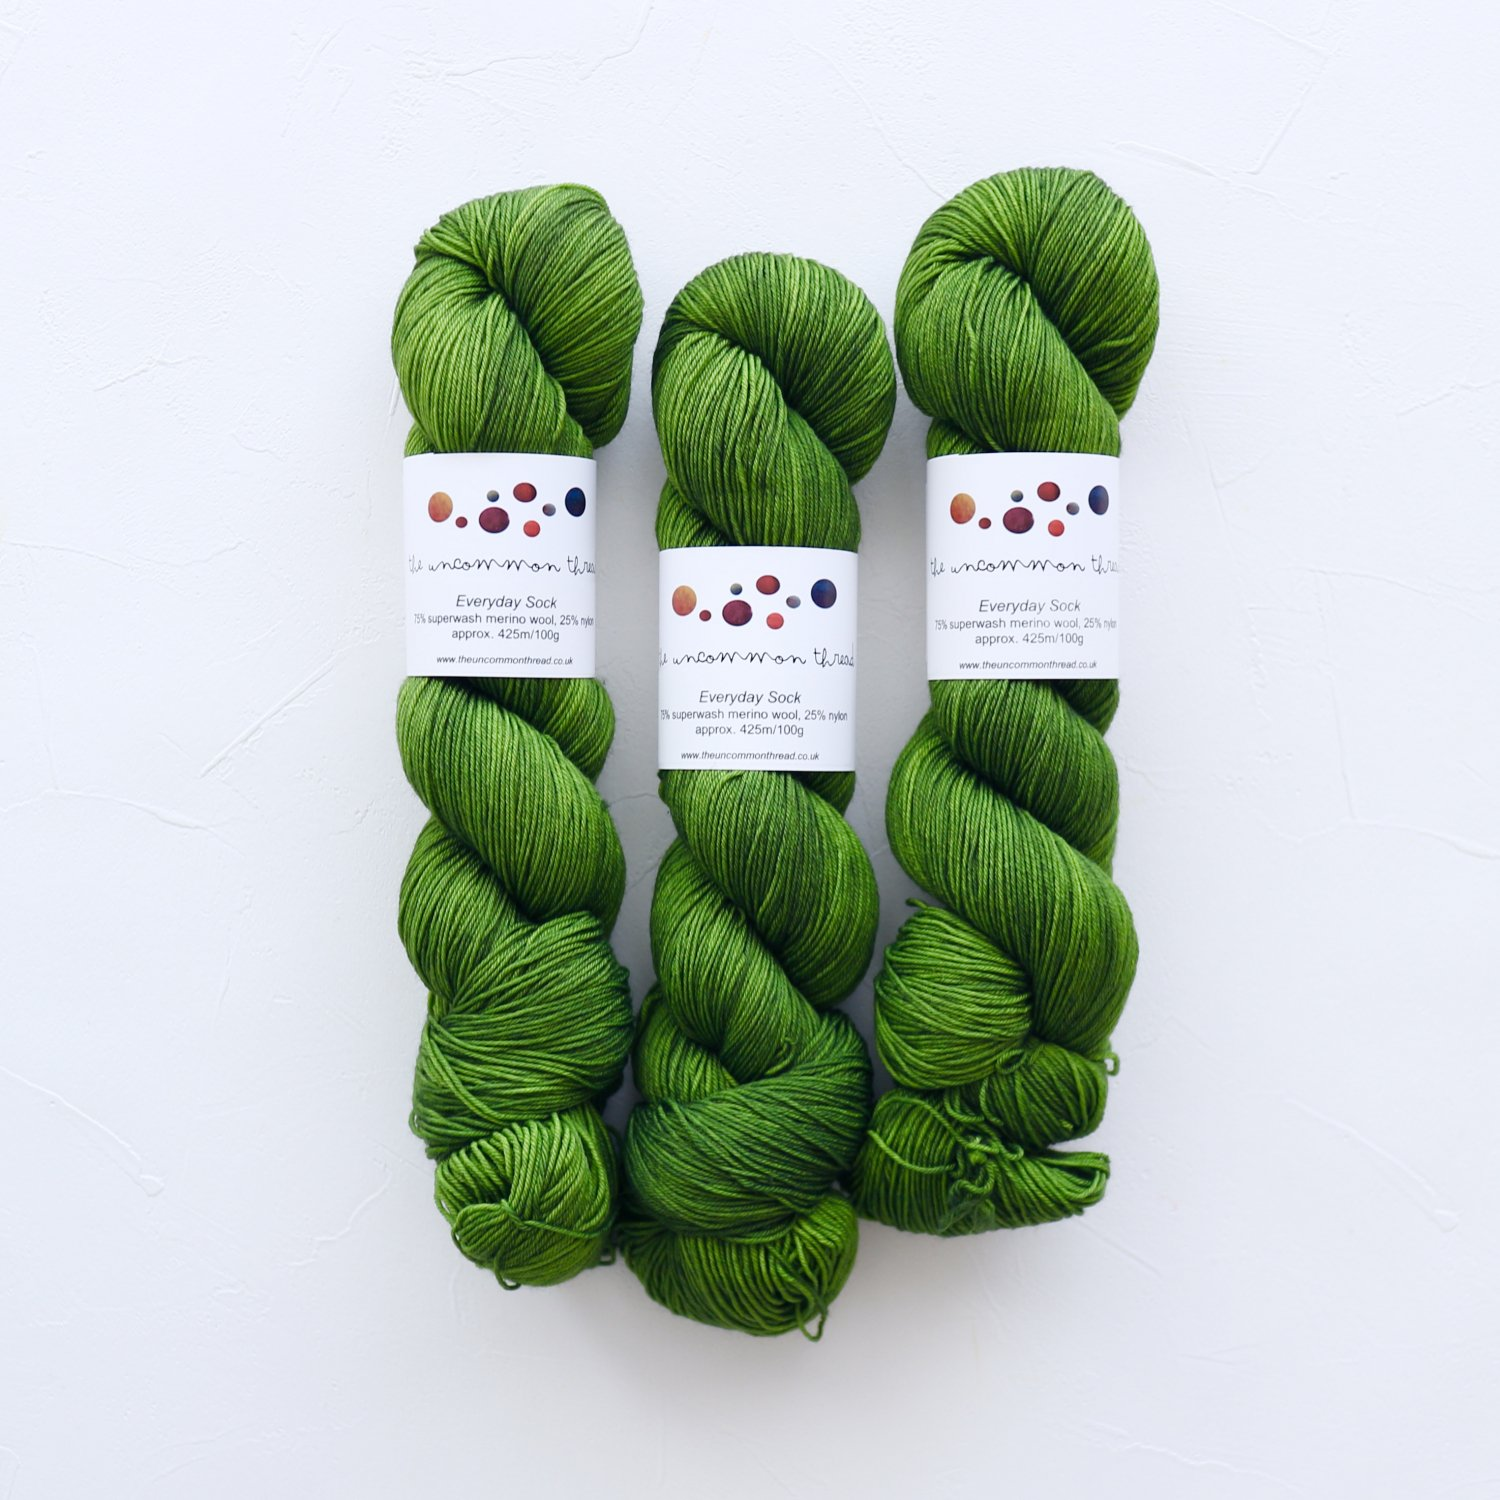 【The Uncommon Thread】<br>Everyday Sock<br>Botany